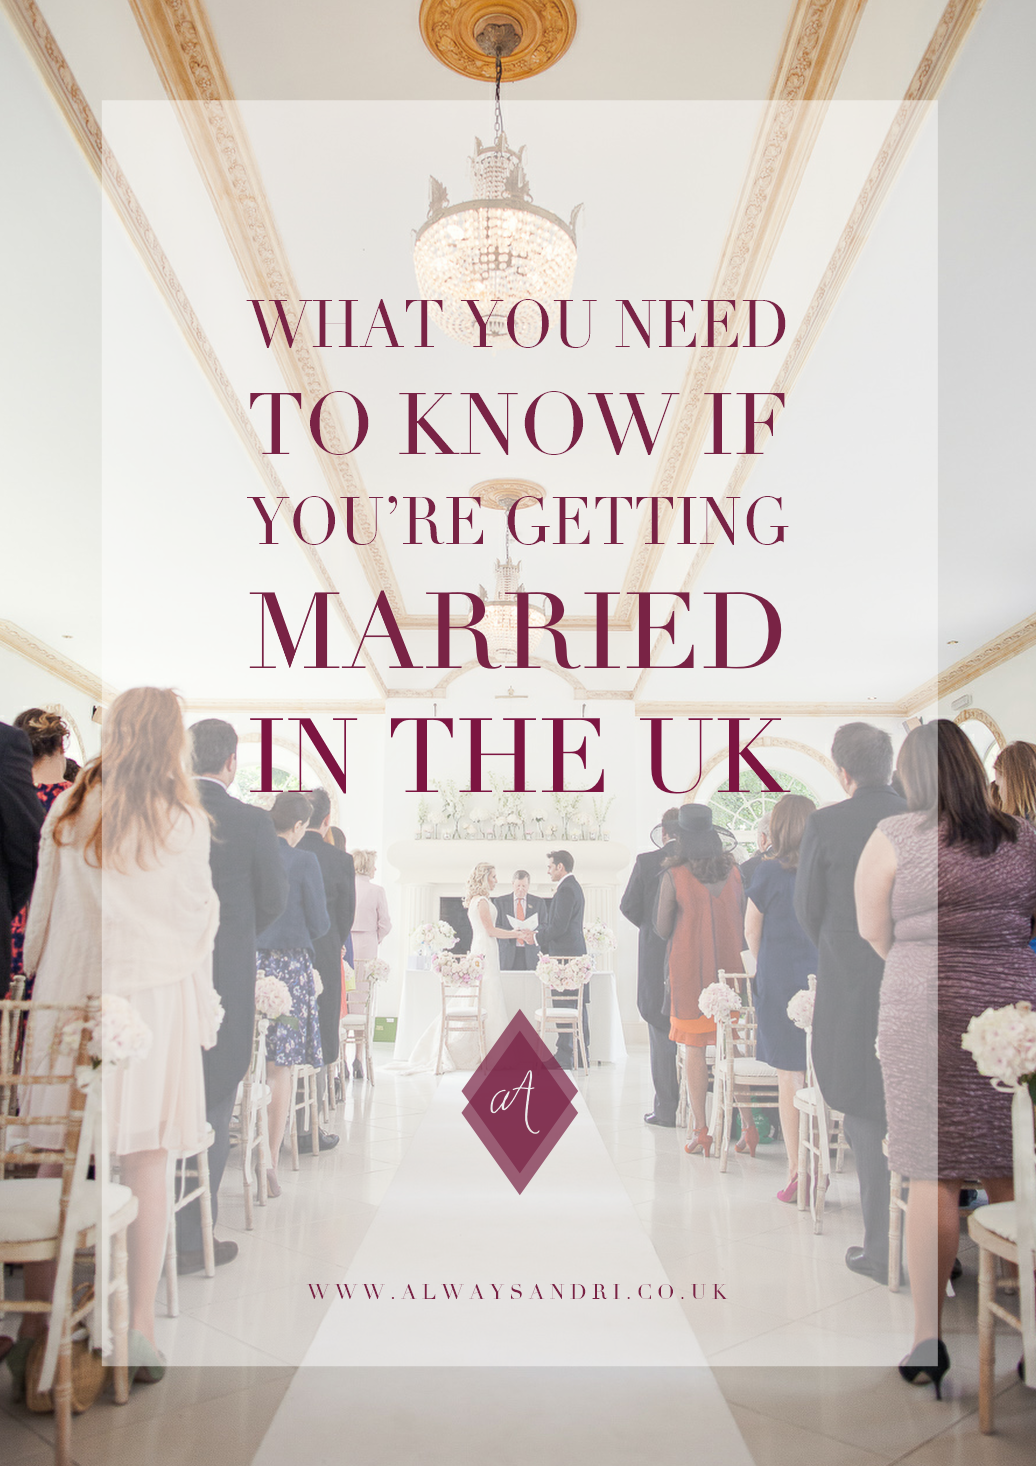 What you need to know to get married in the UK